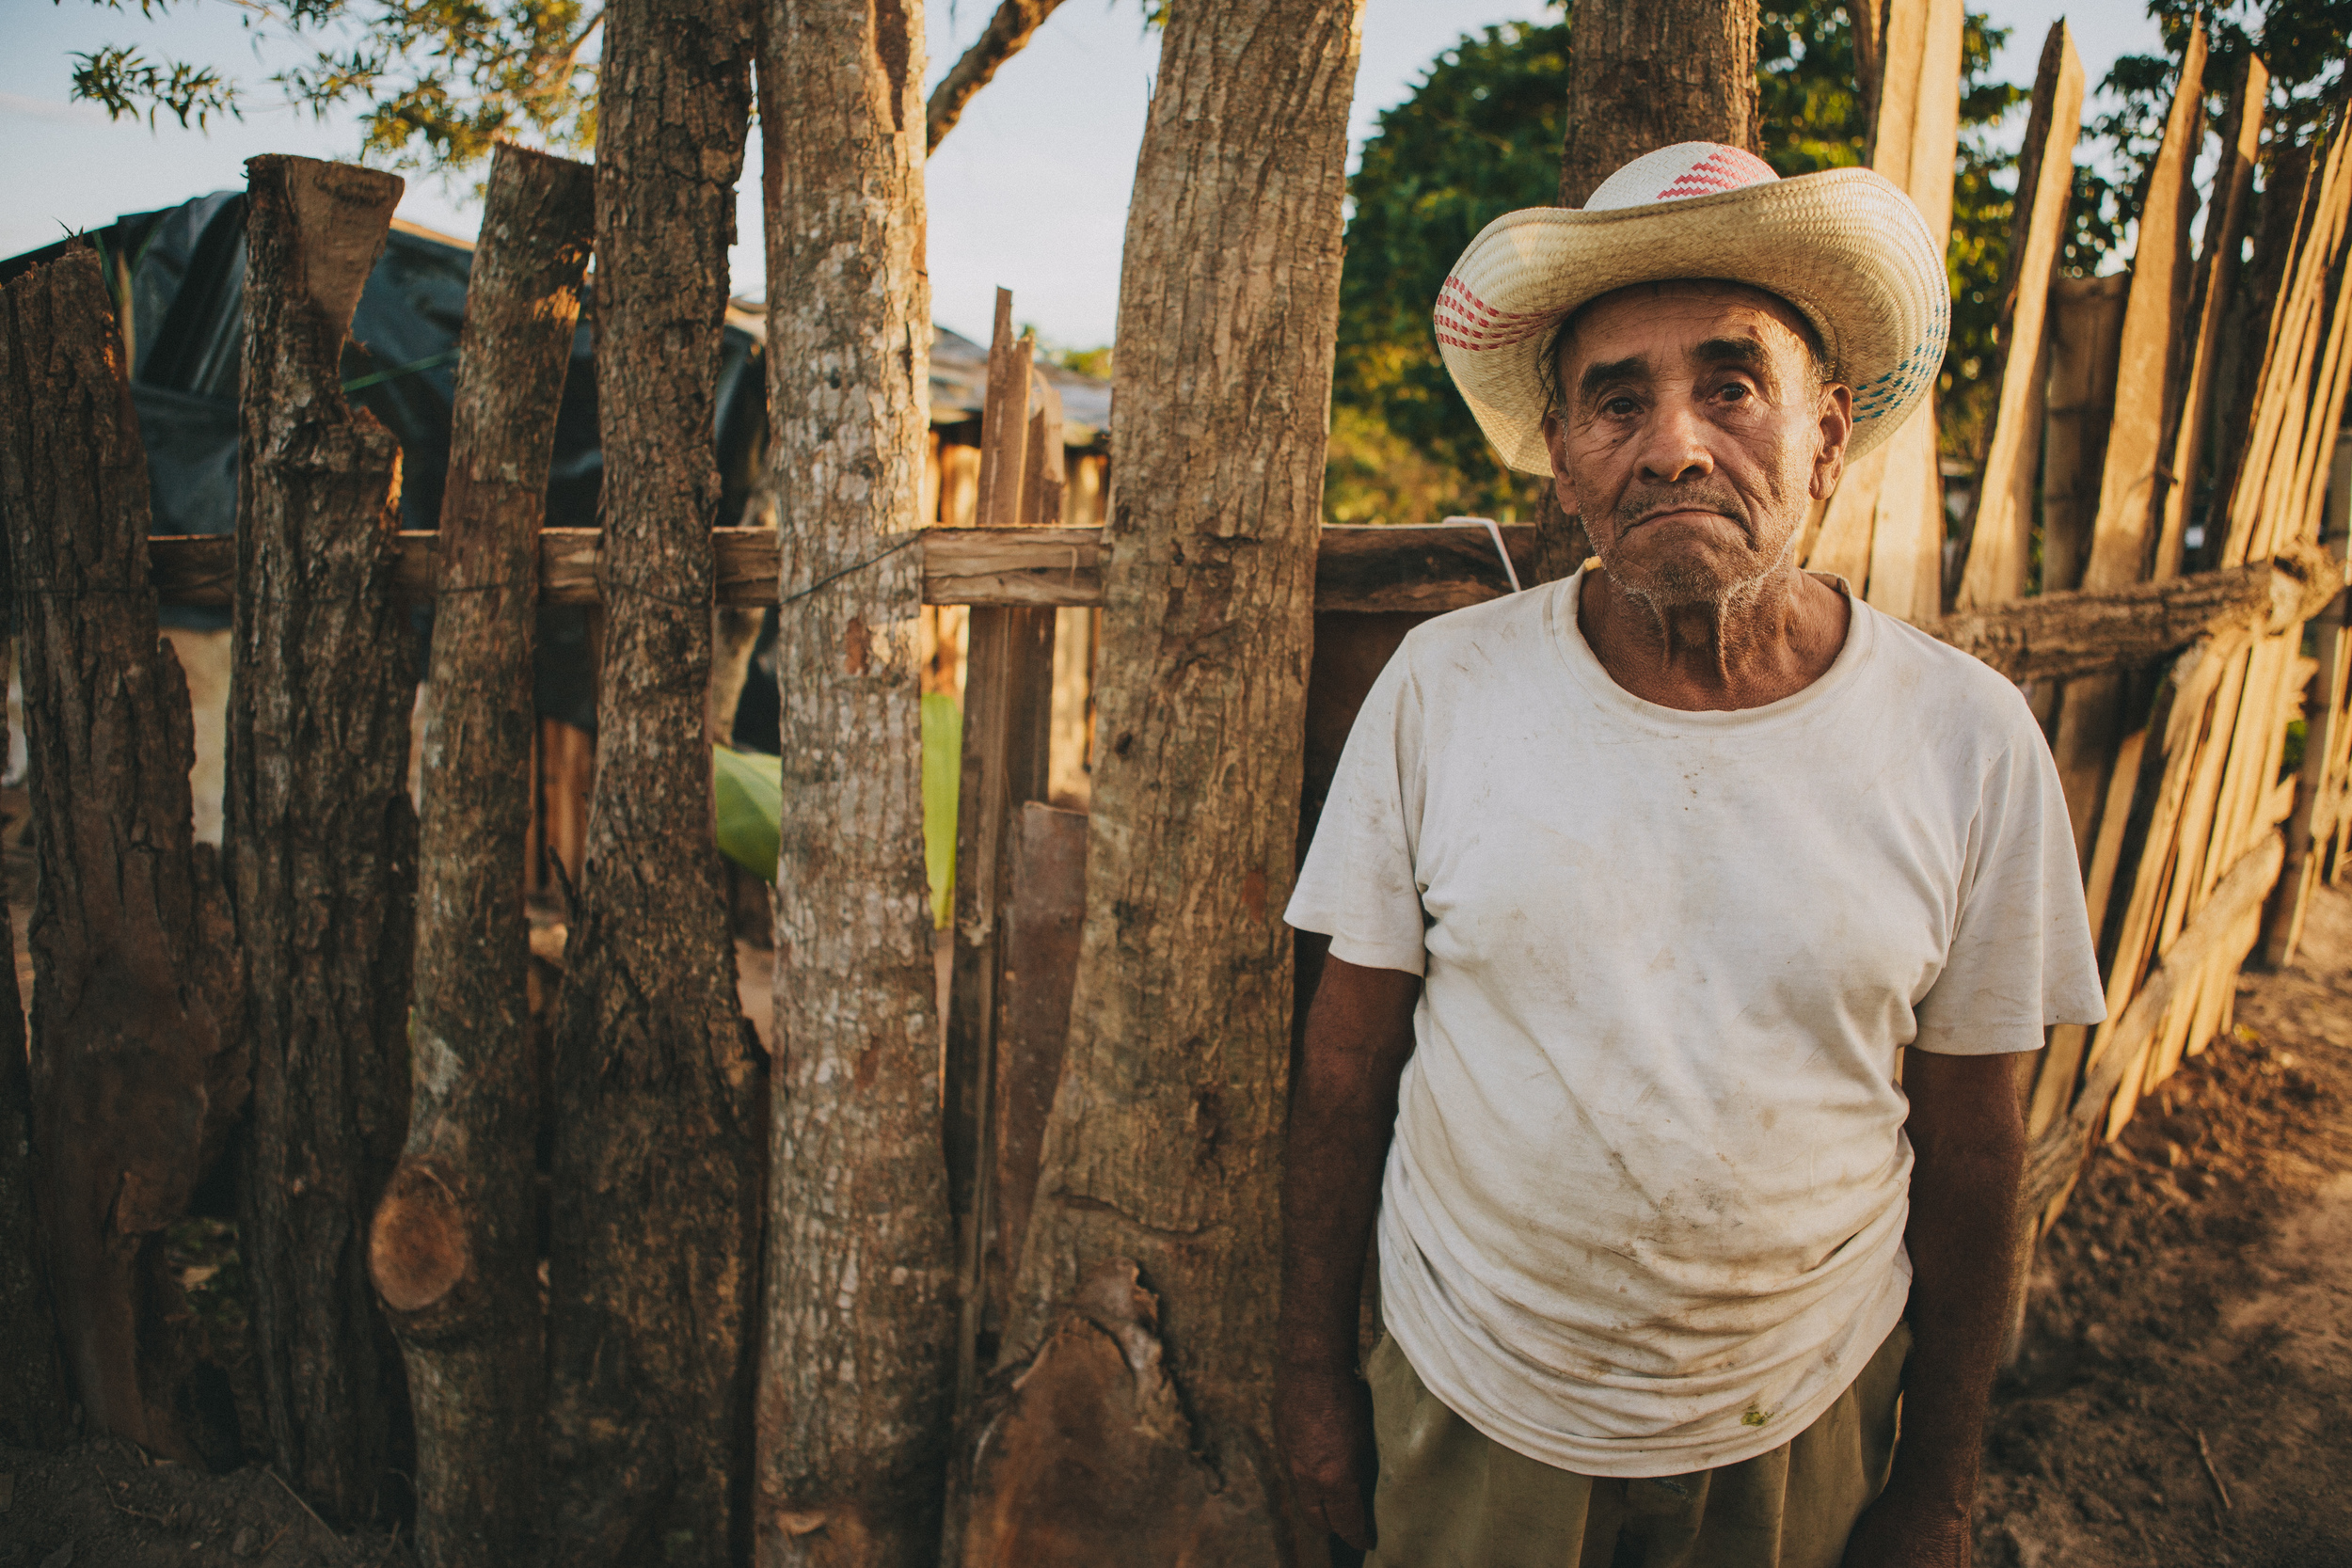 El_Milagro_Portraits_Documentary_Photography_Global_Eyes_Media_010.jpg